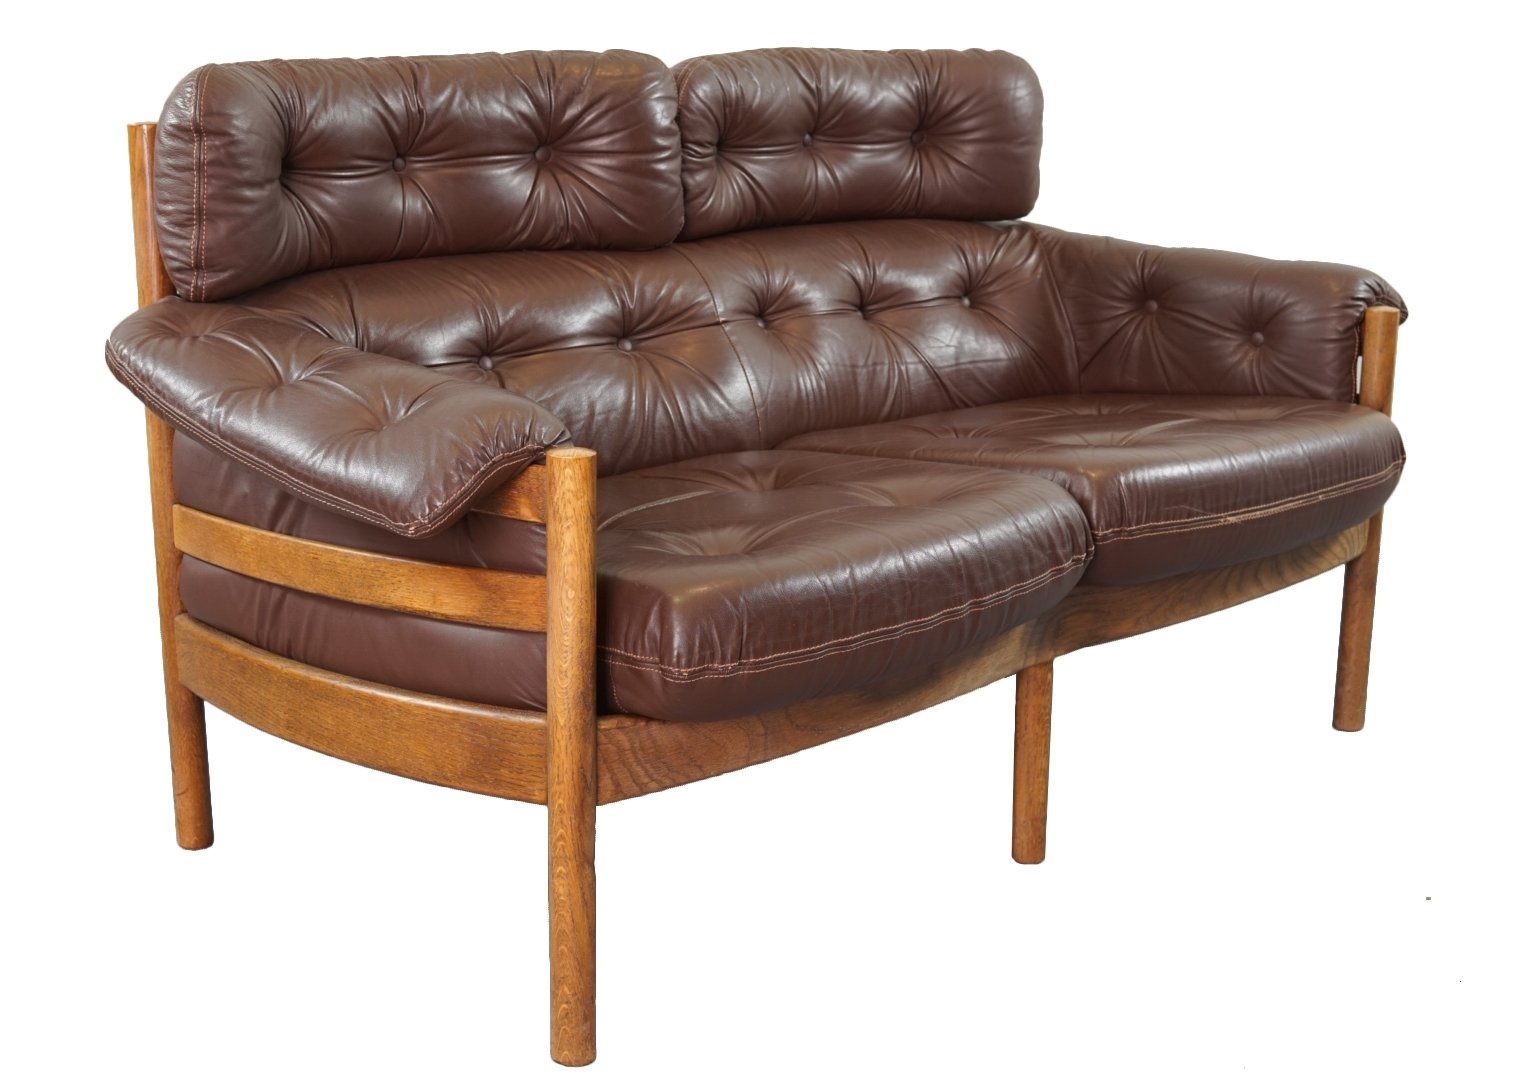 teak and leather sofa by sven ellekaer for coja